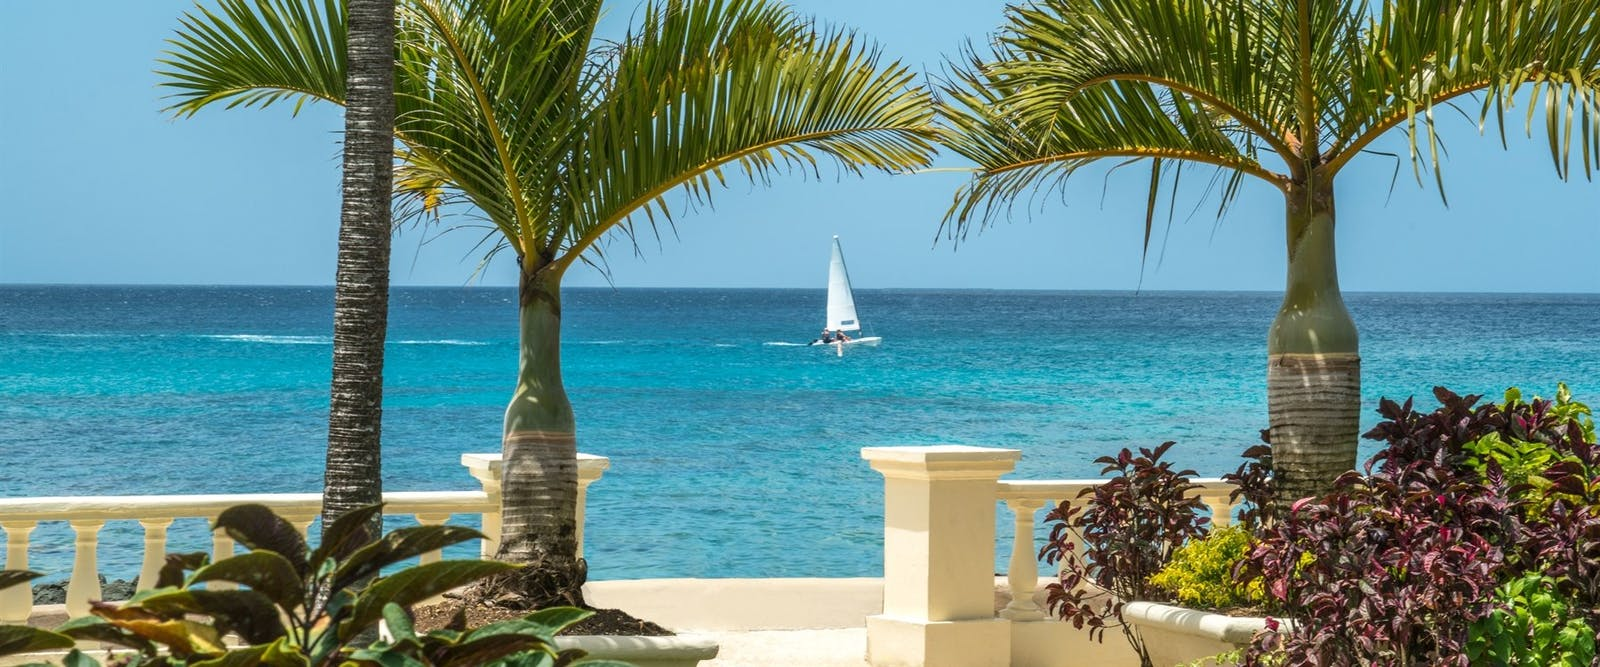 View of The Sea with Sailboat at Coral Reef Club, Barbados